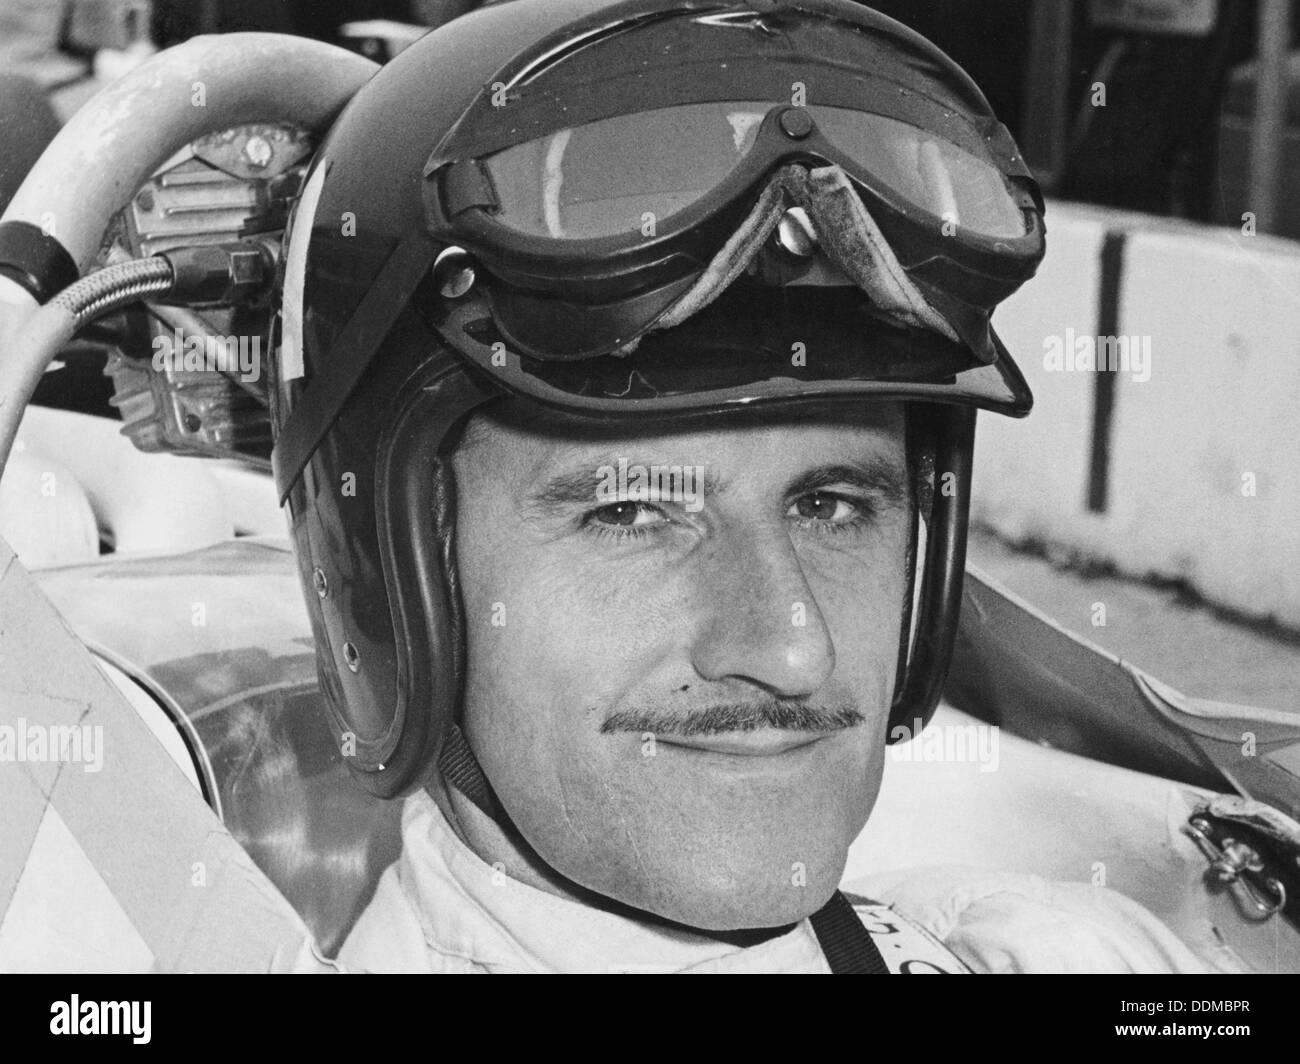 Graham Hill in cockpit of Lola T90, Indianapolis, 1966. - Stock Image